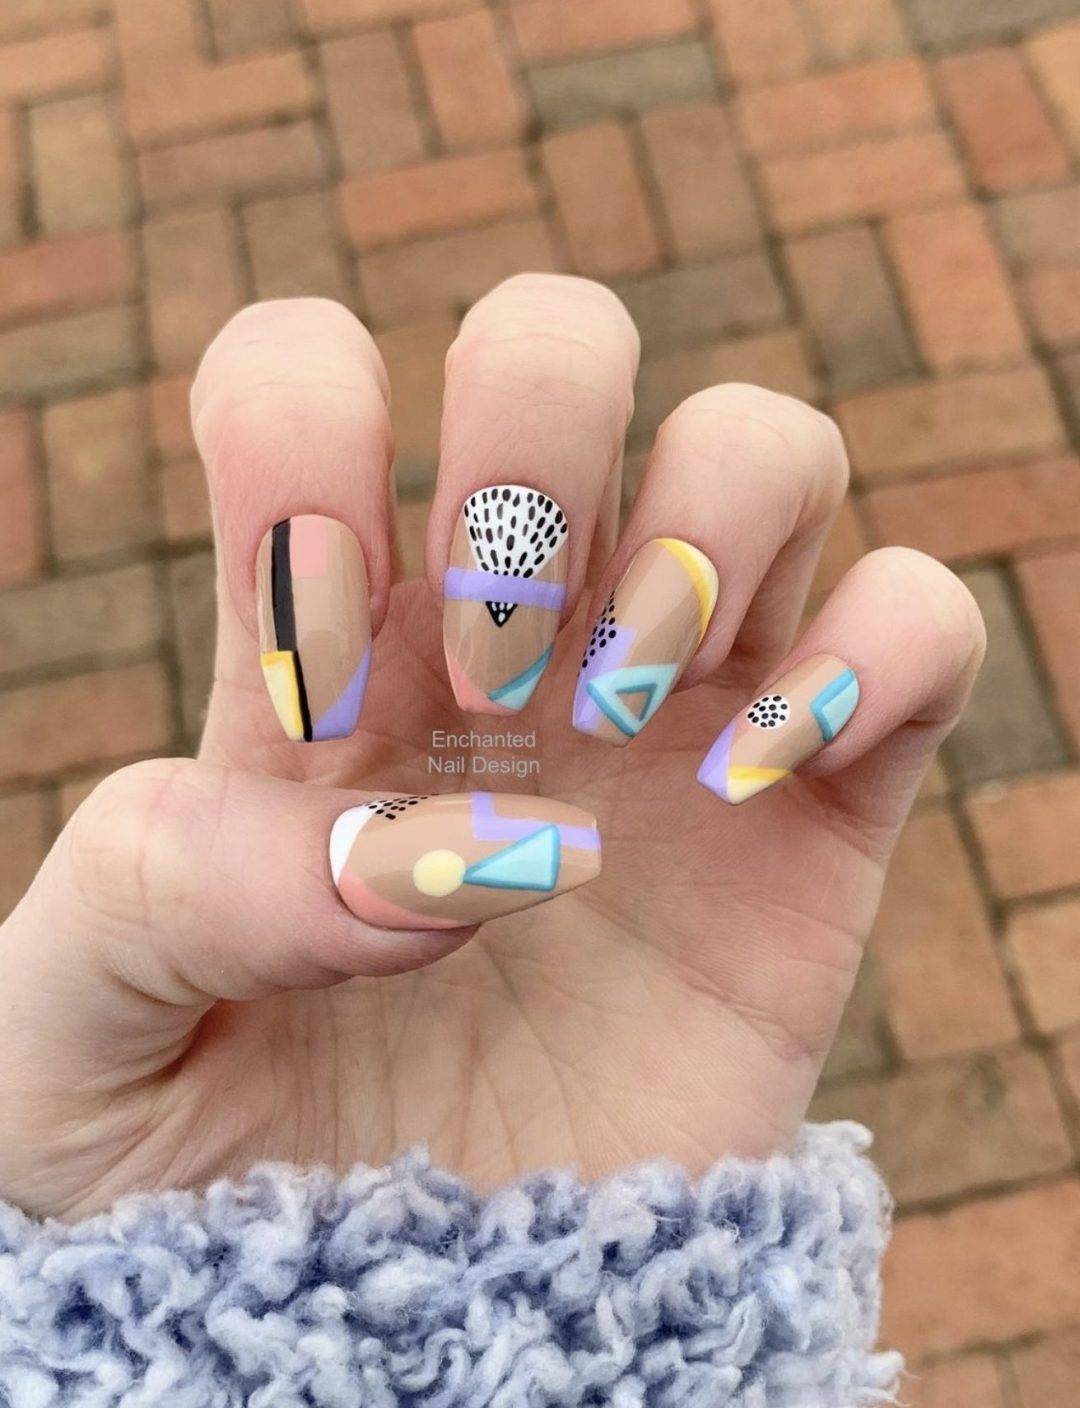 Cute and colorful abstract nail designs with patterns